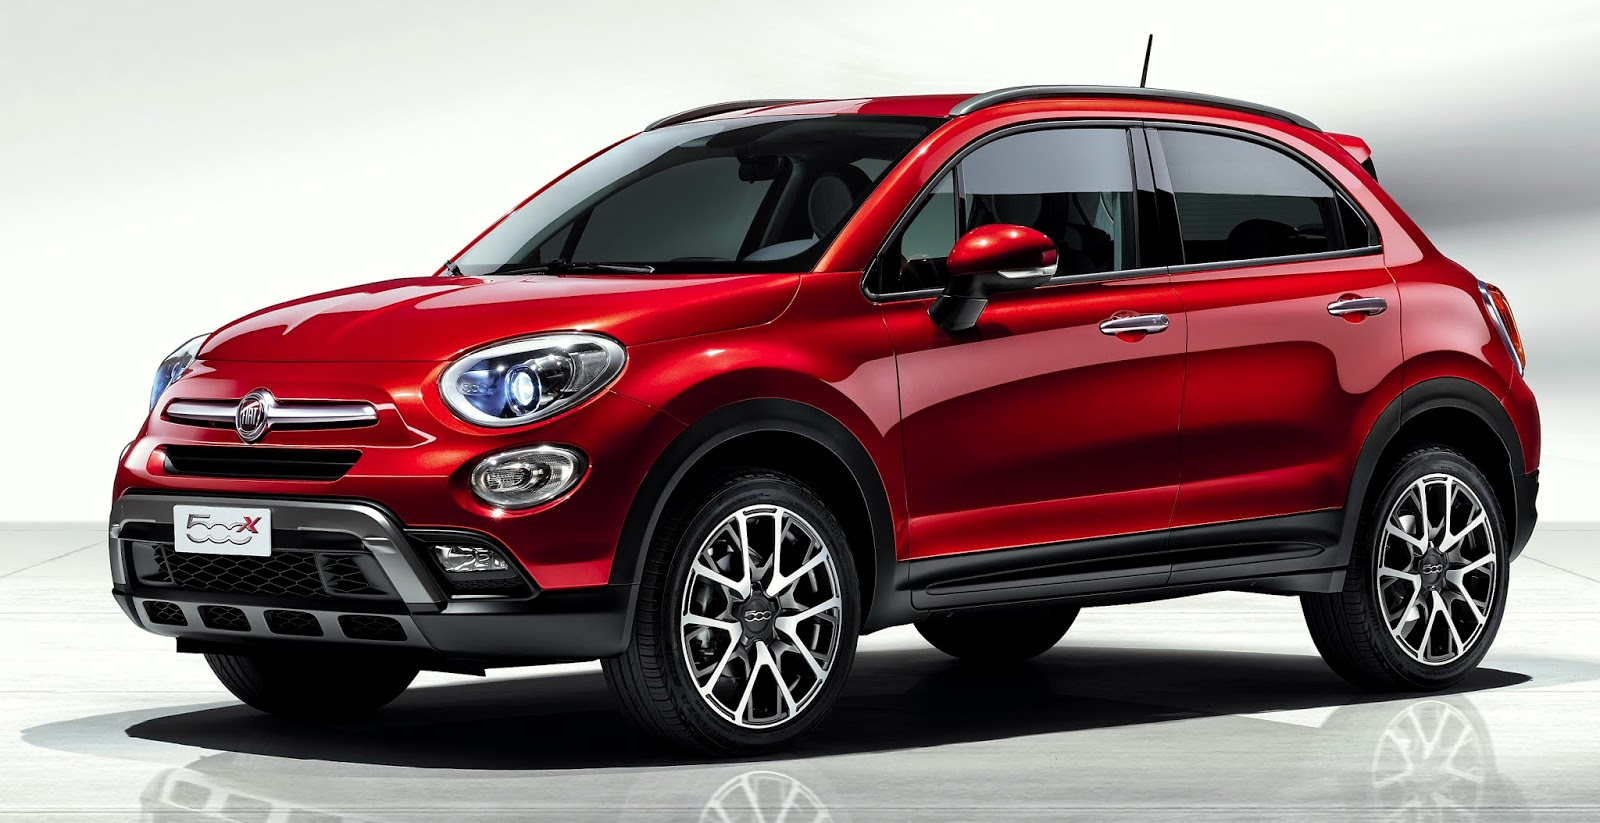 fiat debuts all new 500x sub compact crossover at the paris motor show w video. Black Bedroom Furniture Sets. Home Design Ideas